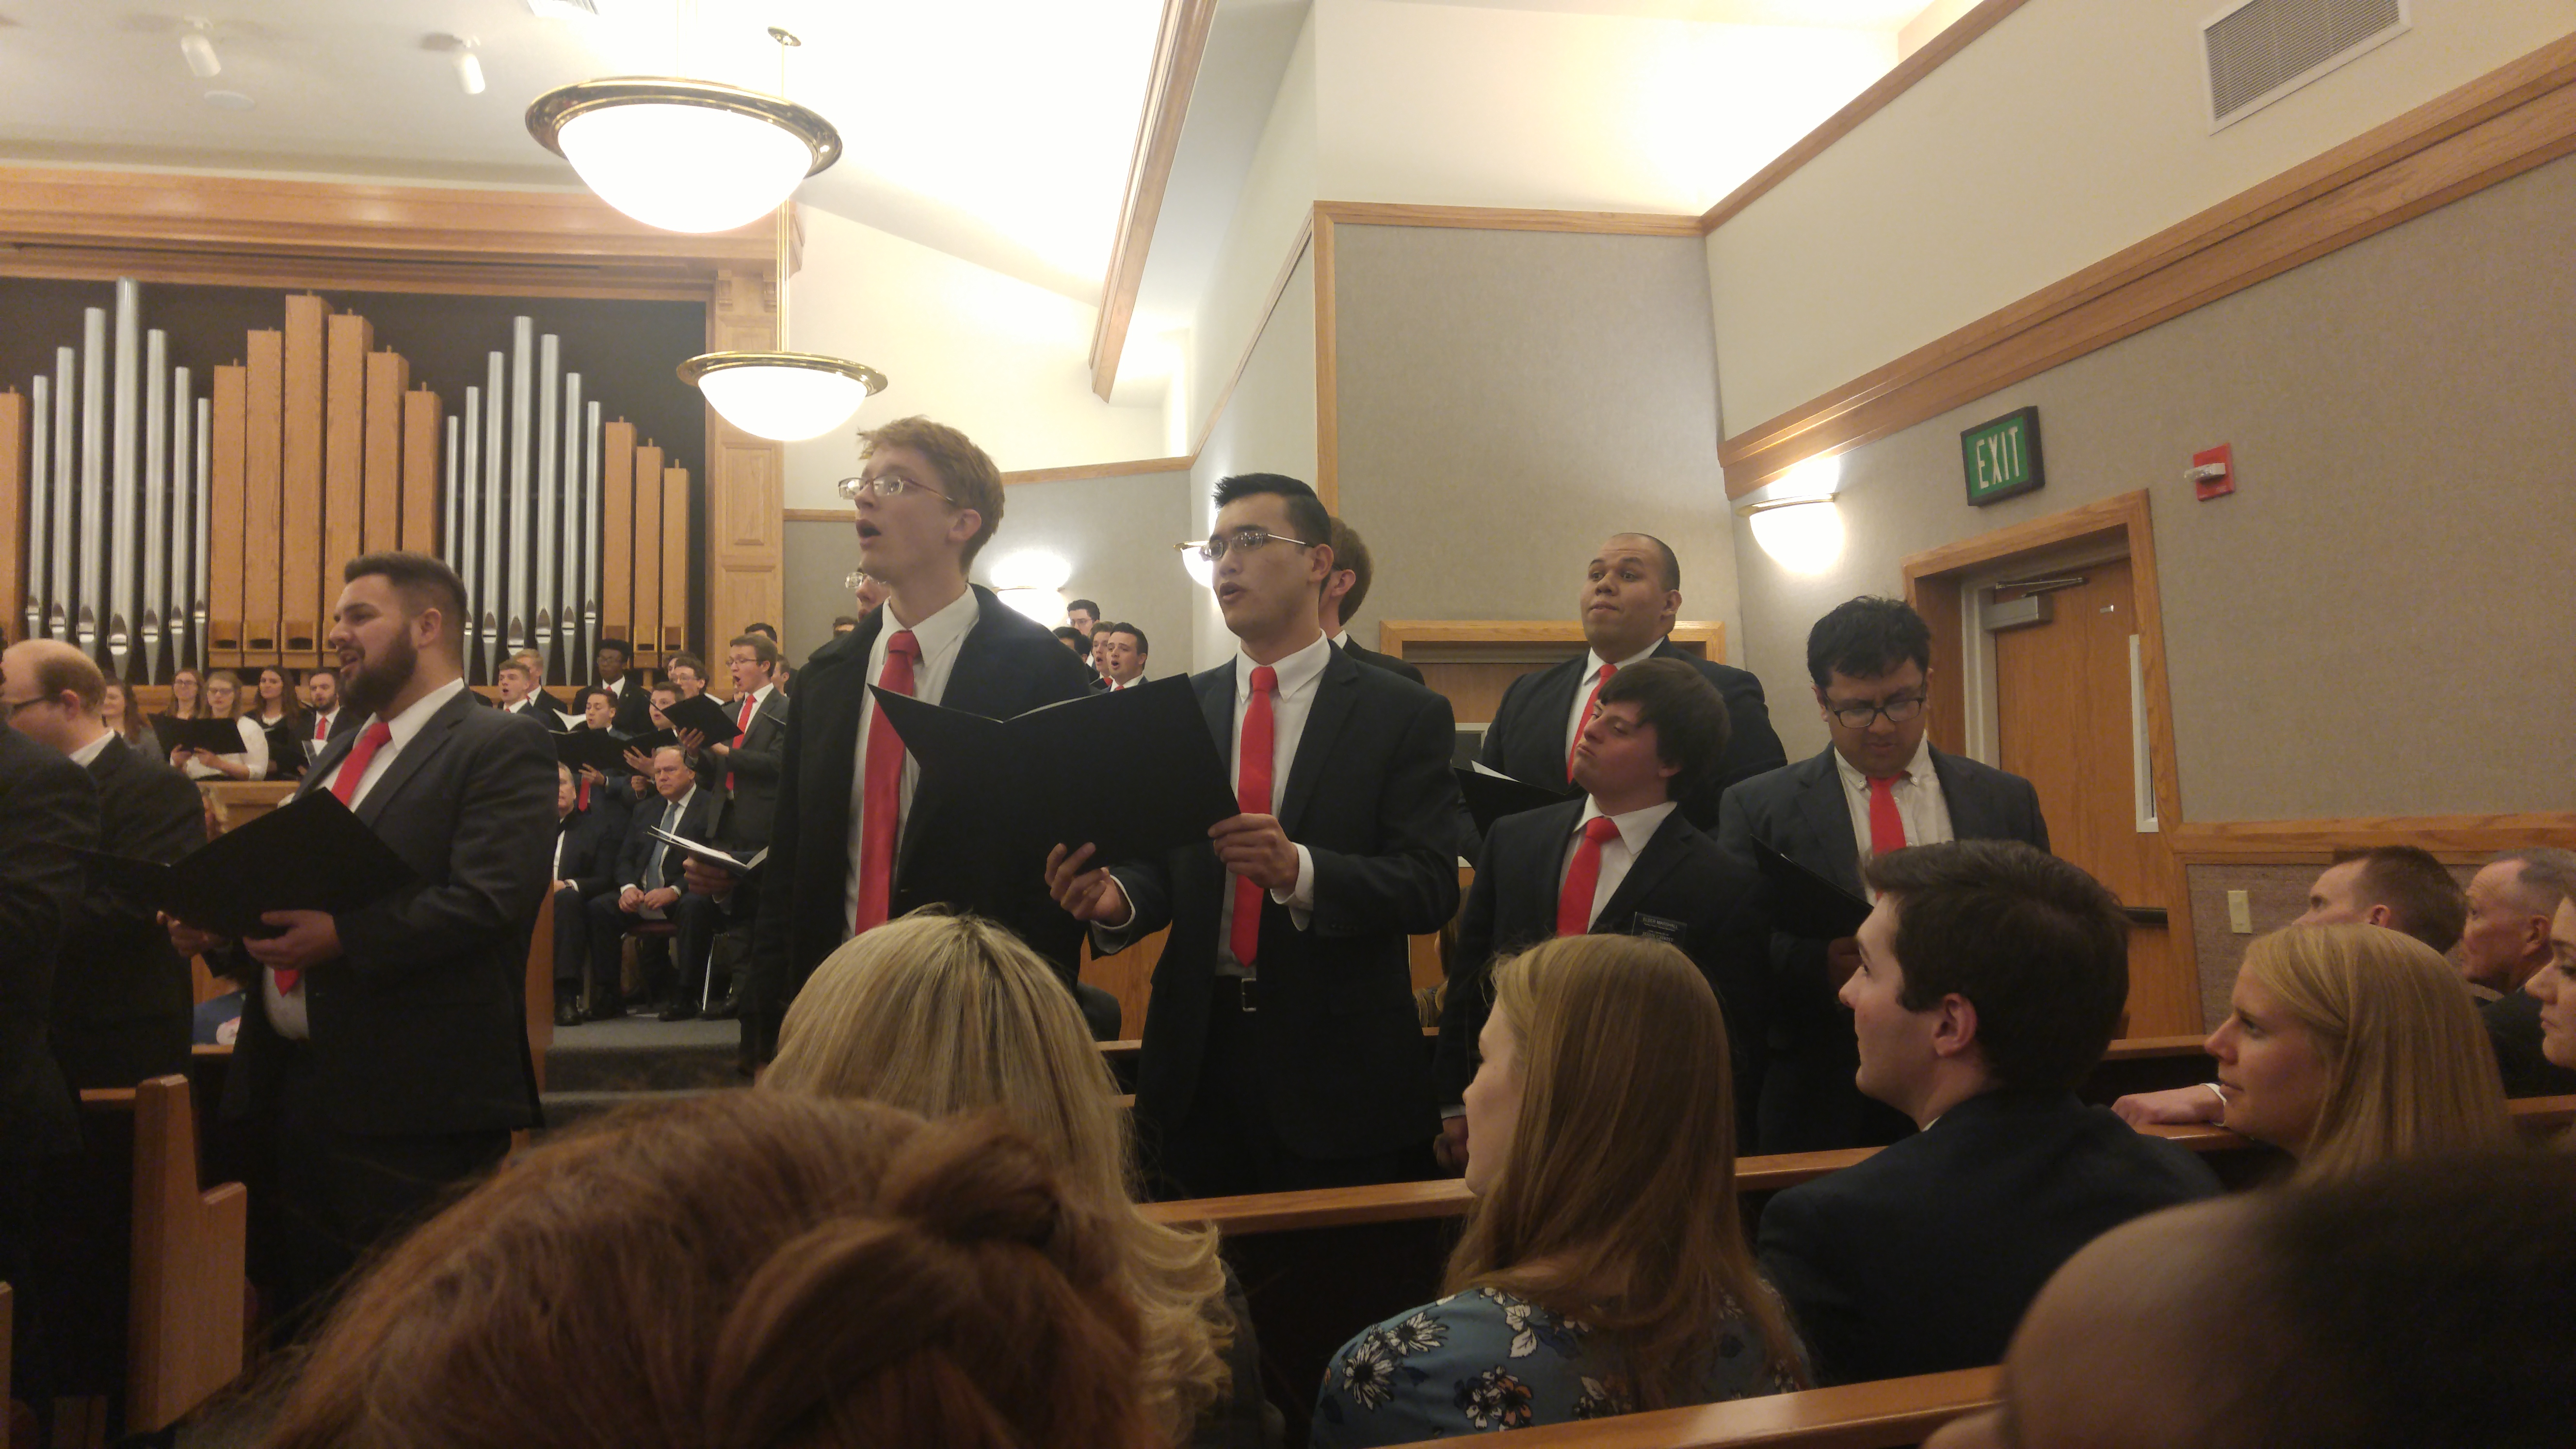 Salt Lake Institute Singers perform during a devotional held on Sunday, Feb. 10, 2019.